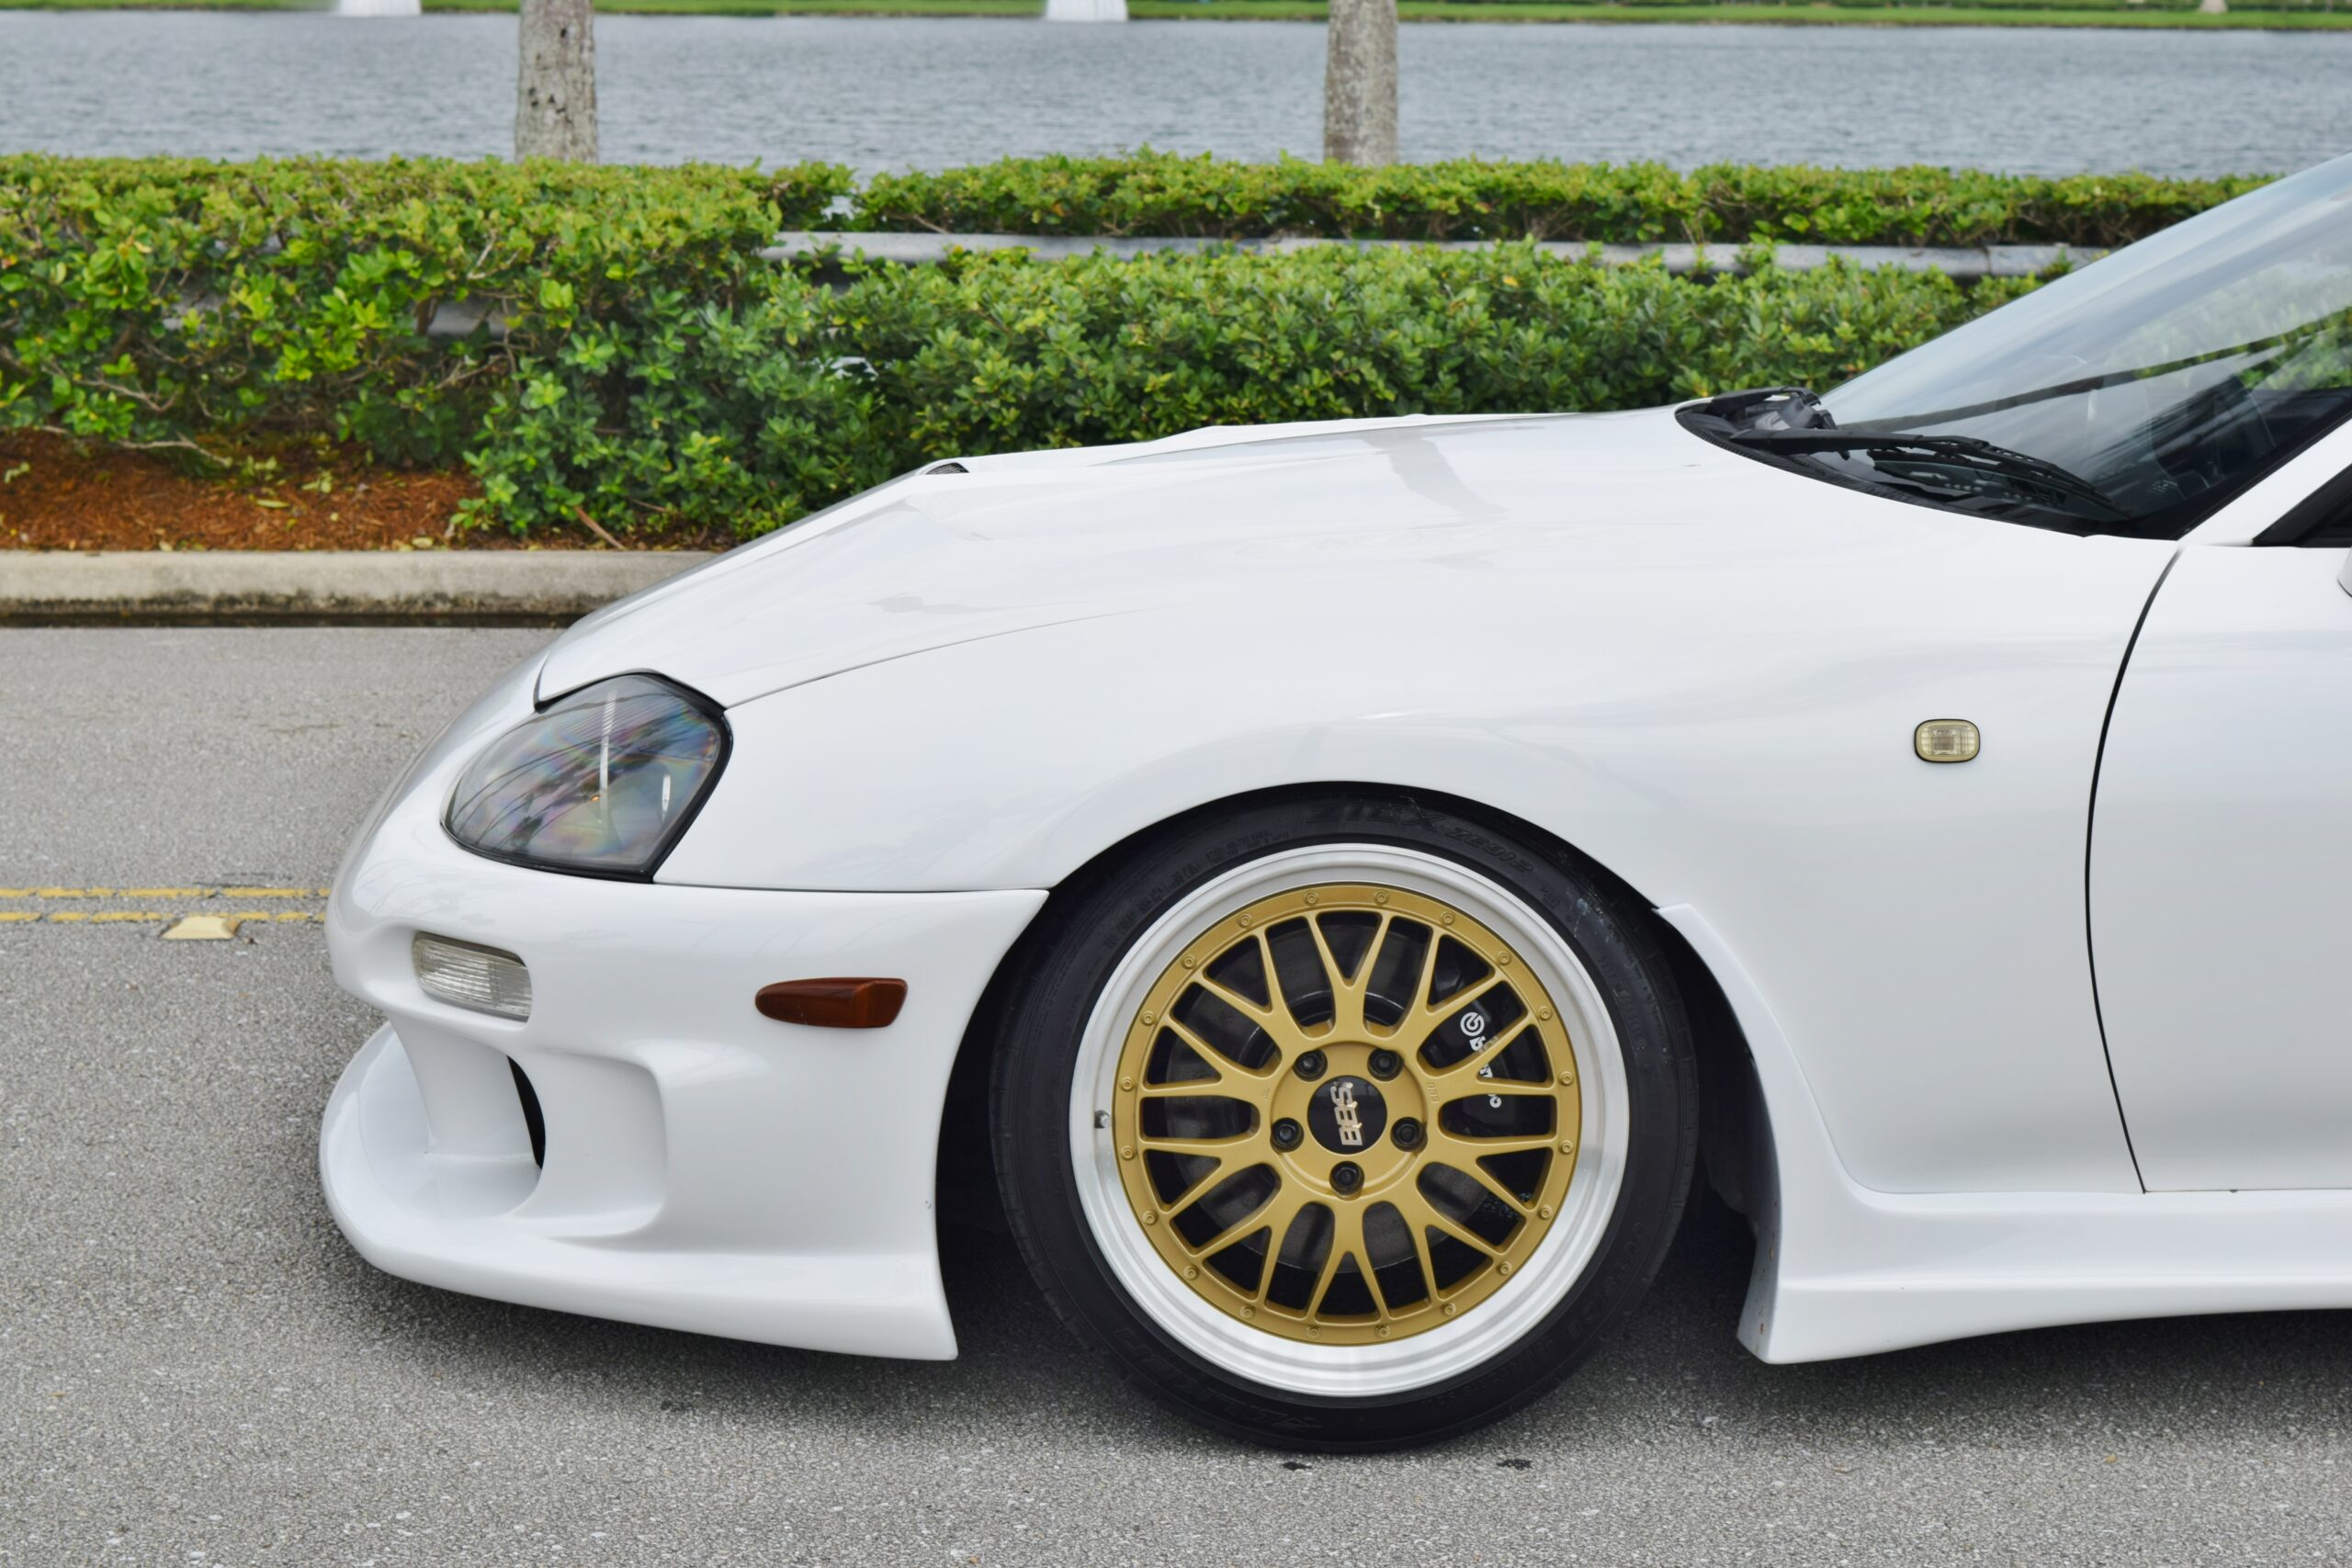 1995 Toyota Supra RZ-S Twin Turbo 2JZ GTE -Factory 6 Speed Manual- BBS LM-Recaro-Tein Coilovers-LOW MILES- Cold AC